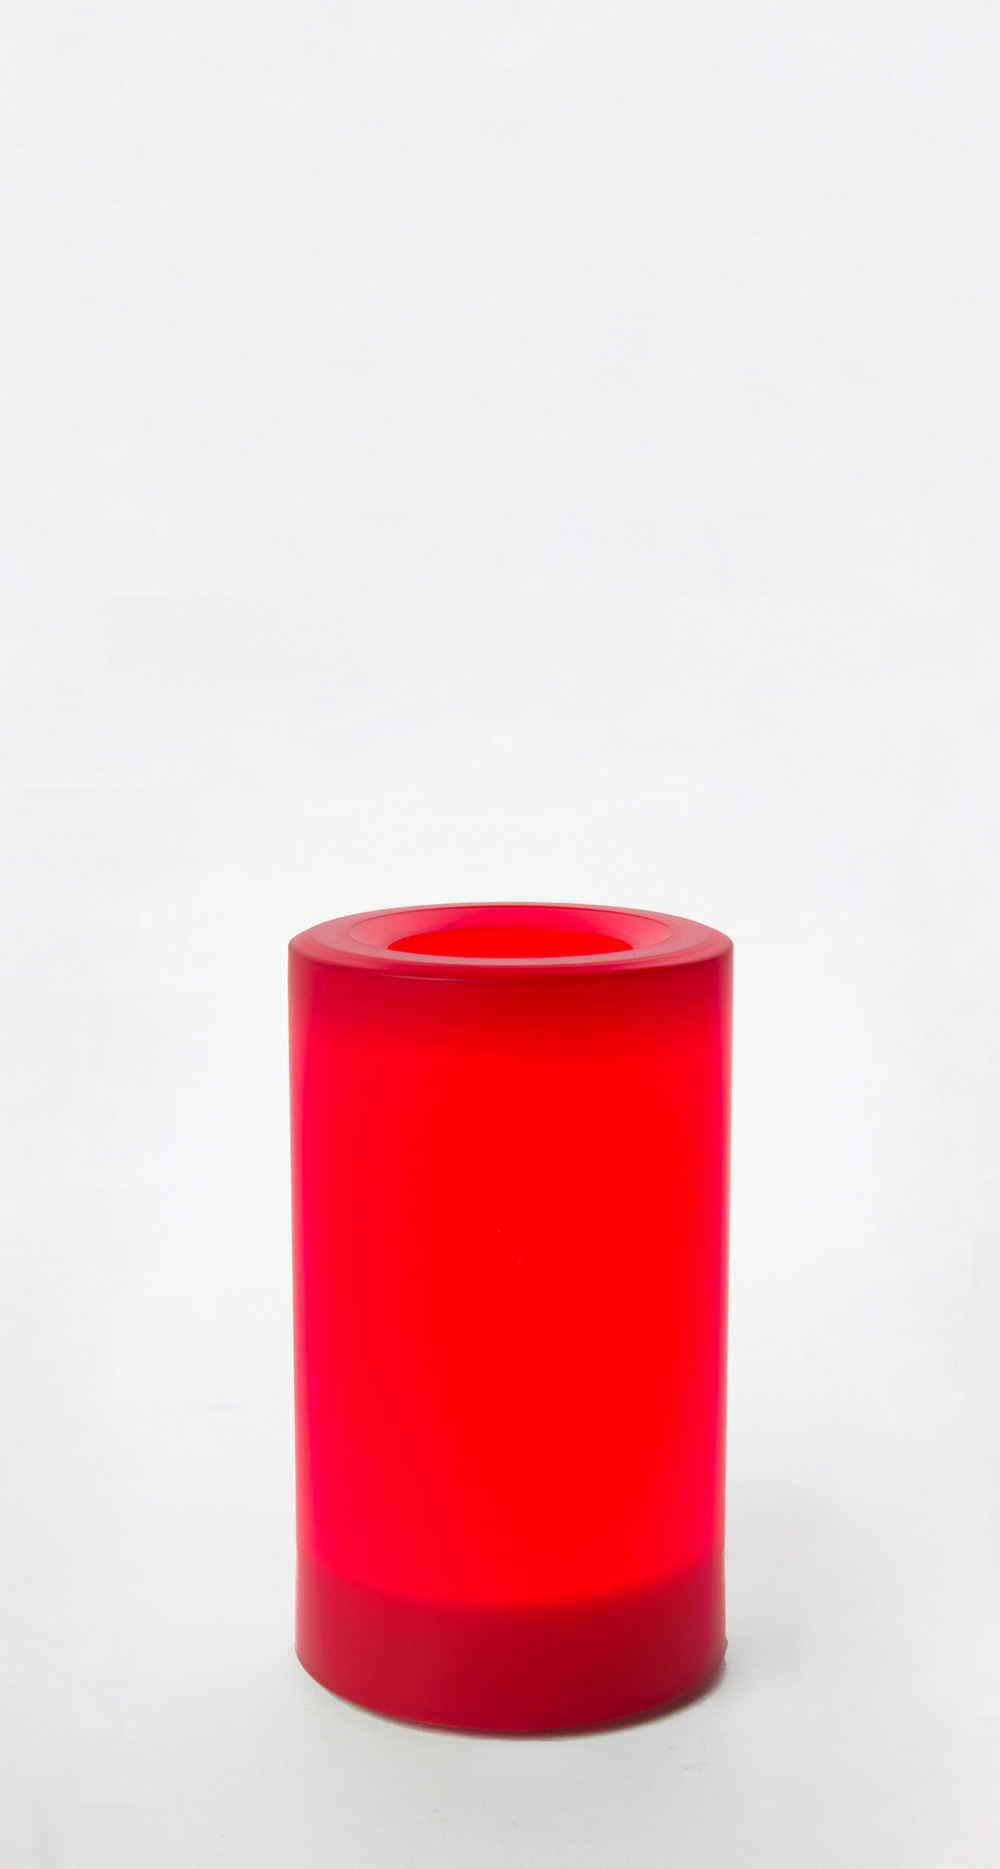 5 Inch Flameless Outdoor Pillar Candle with Timer - Red